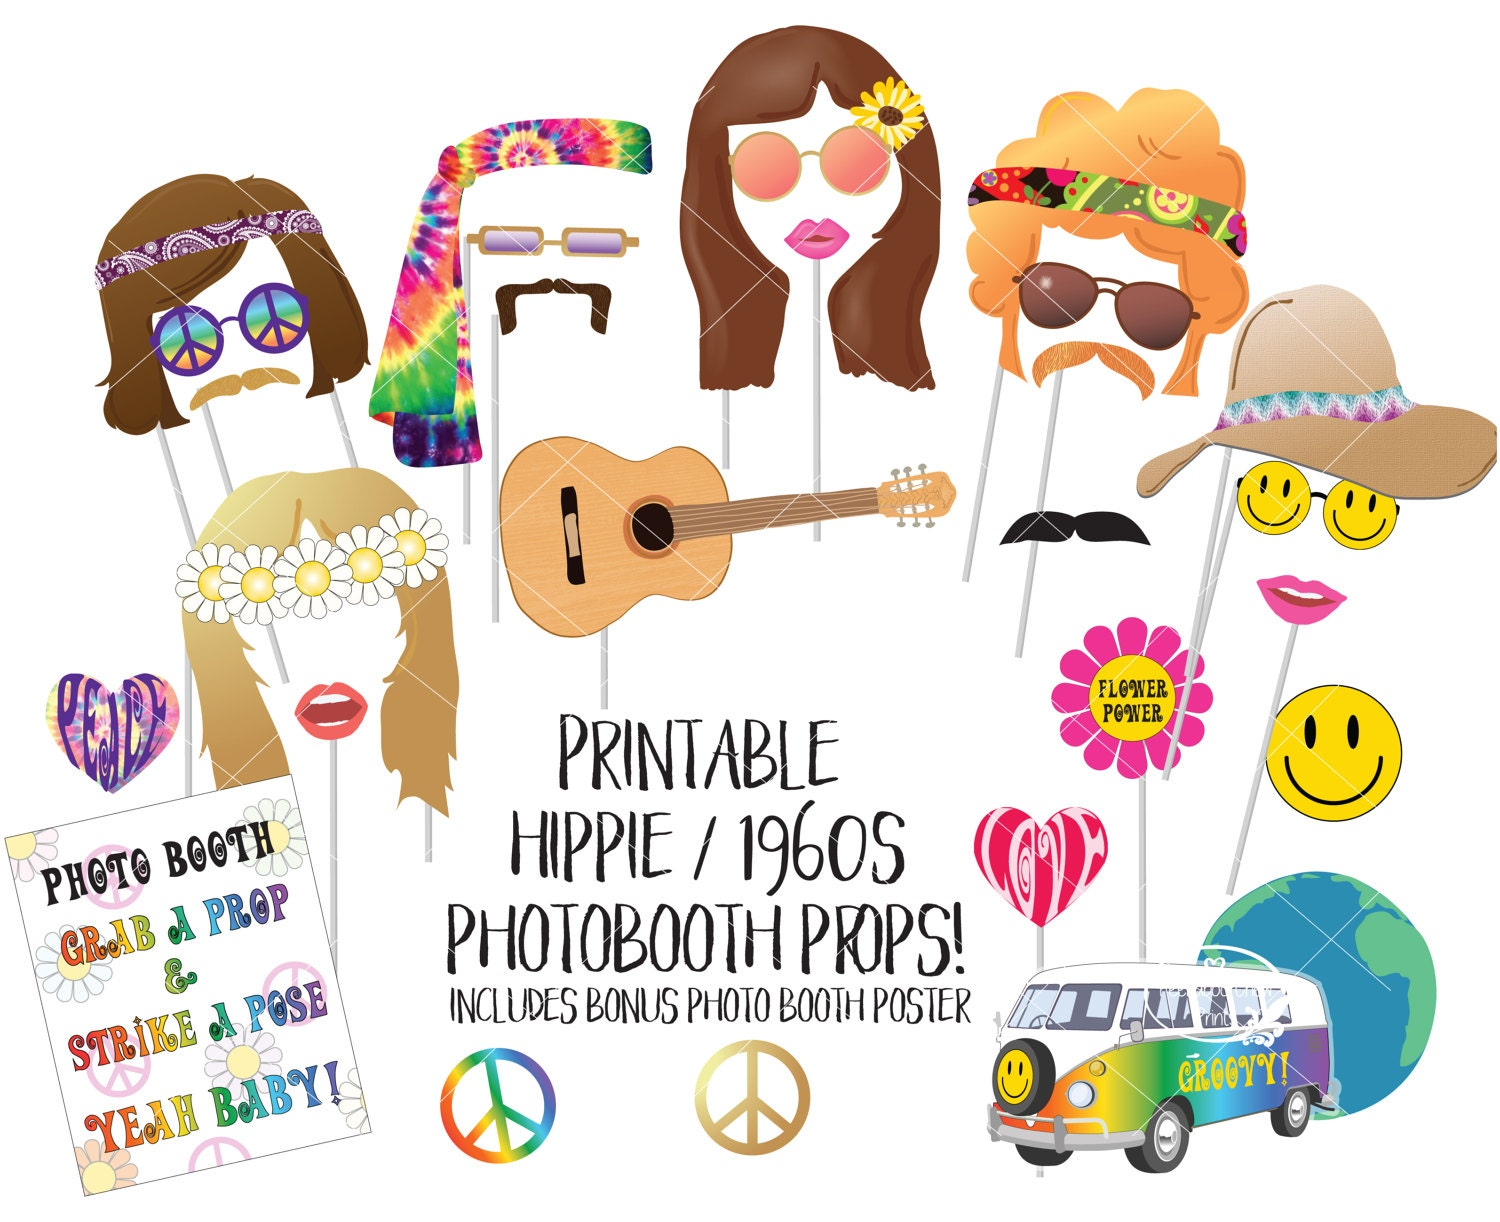 Hippie 1960s Photo Booth Props Sixties Printable Photobooth Etsy